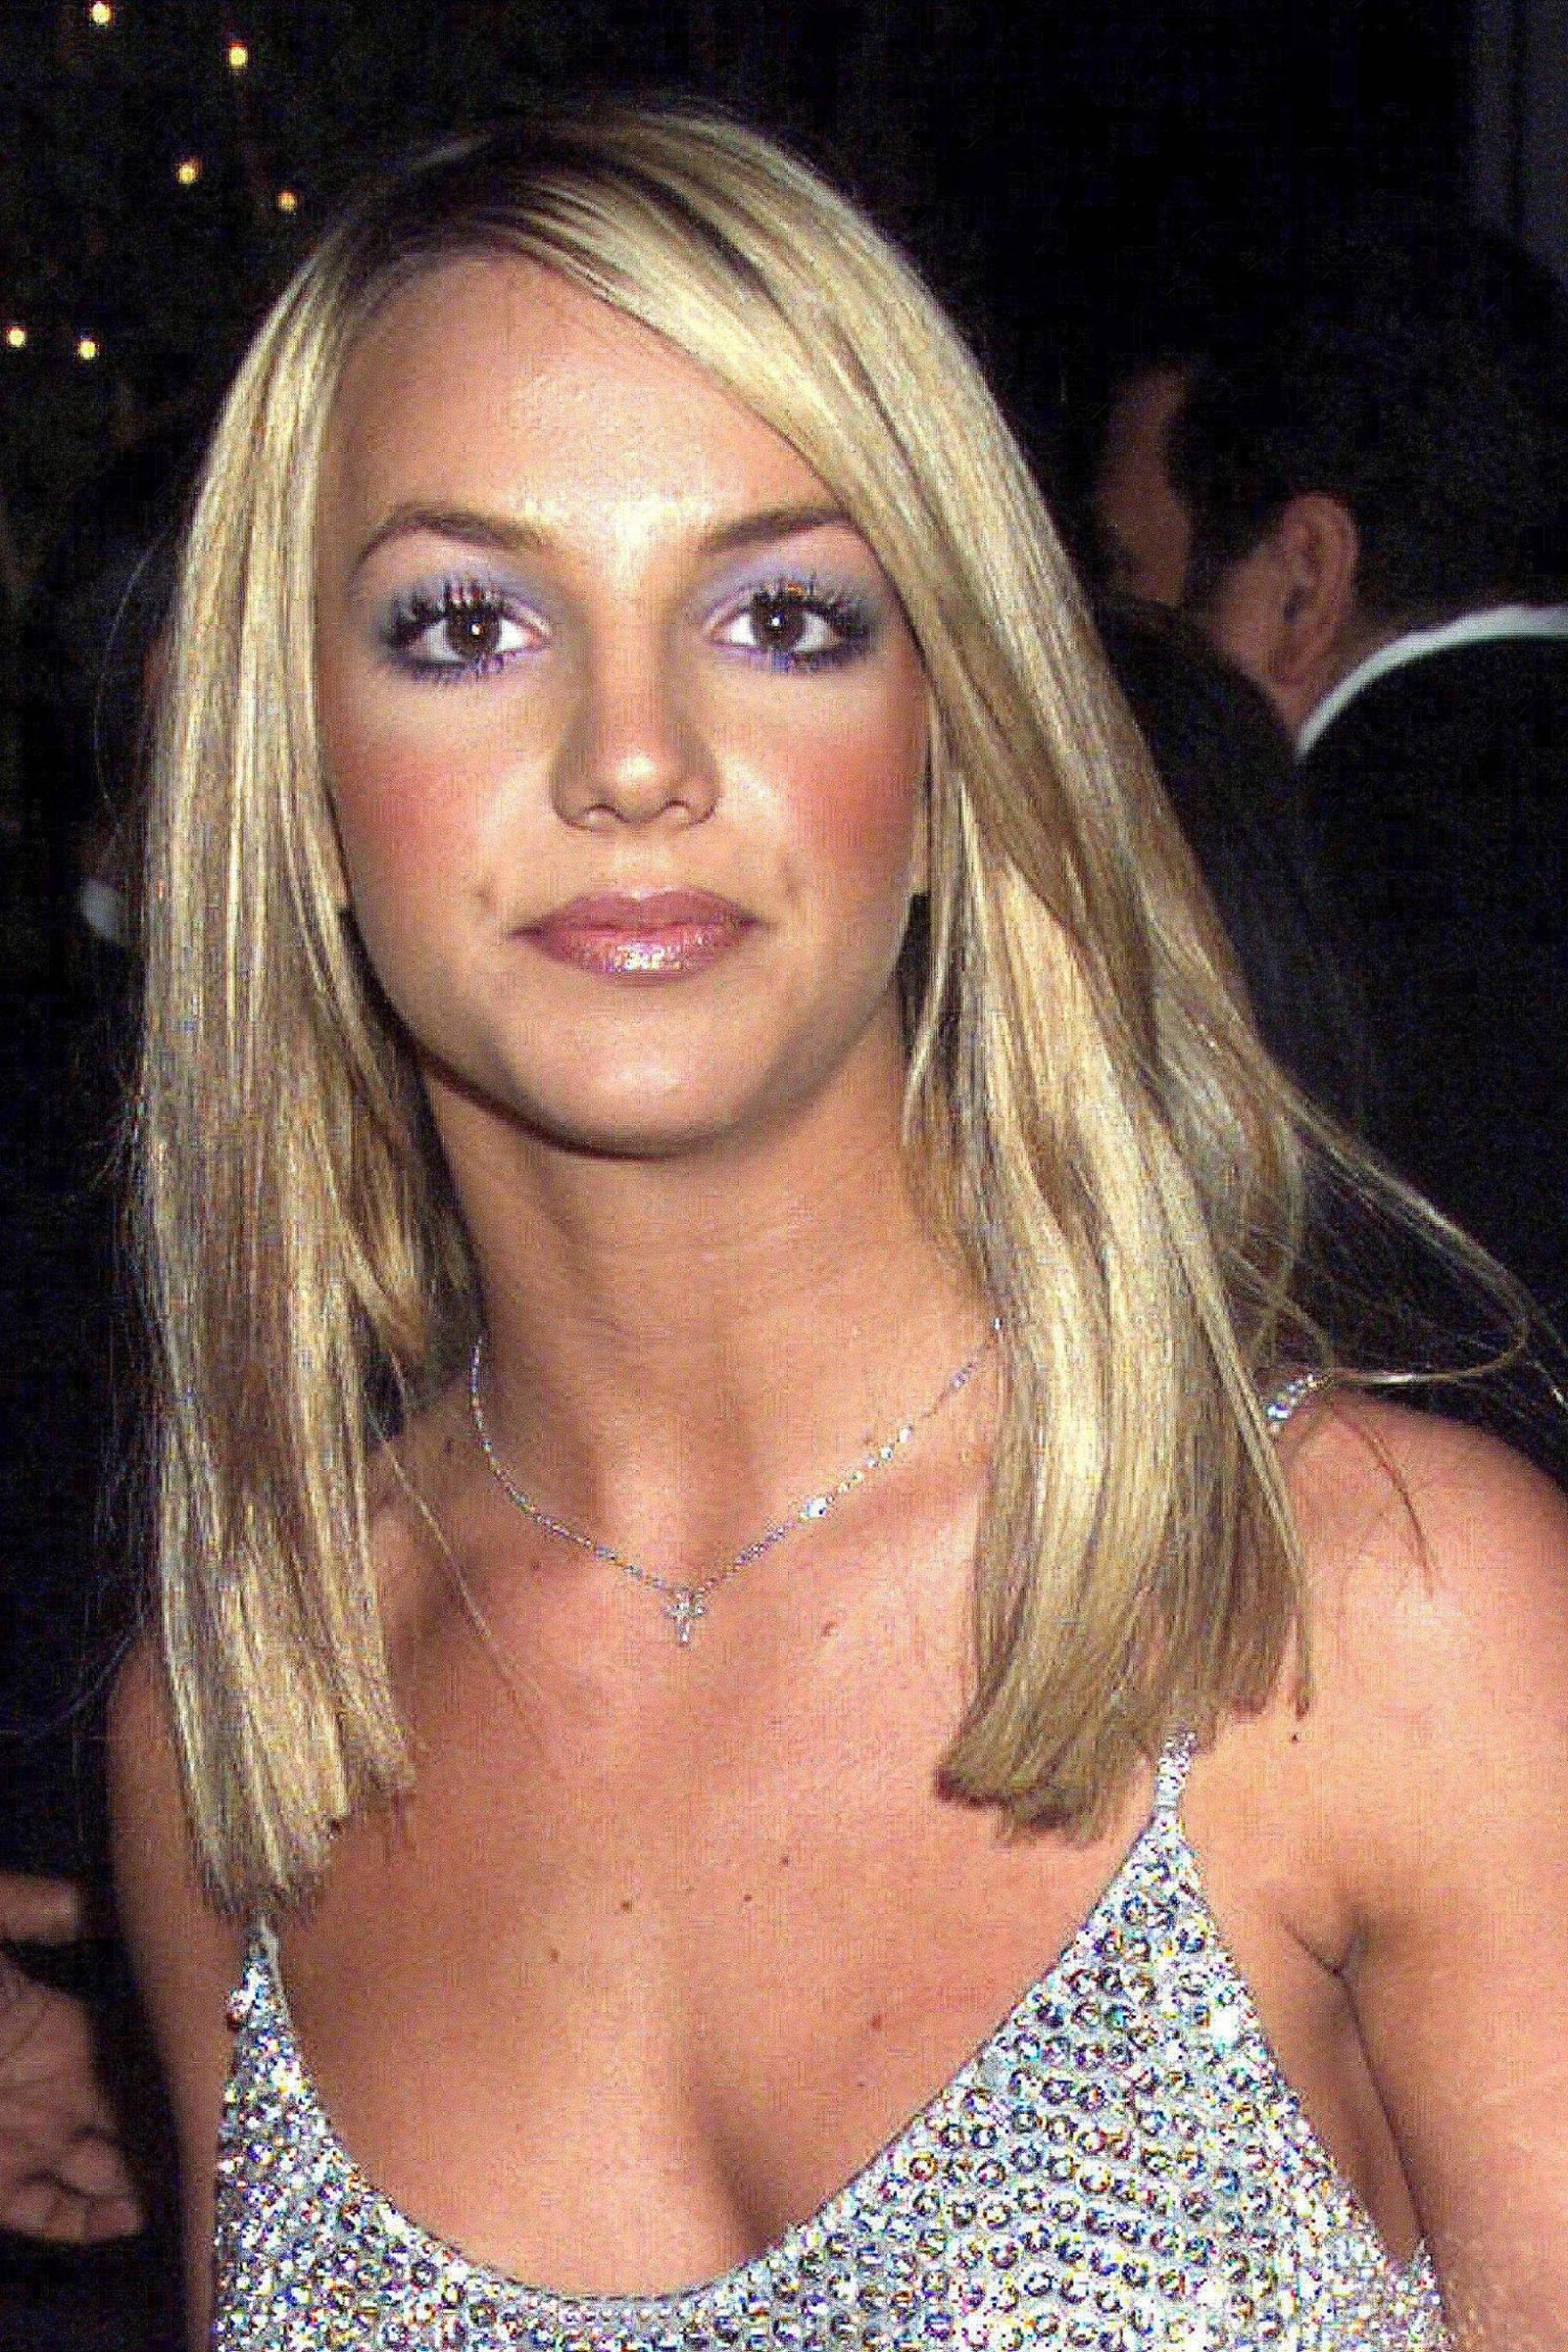 24 Early 2000s Beauty Looks You Forgot Were Obsessed With